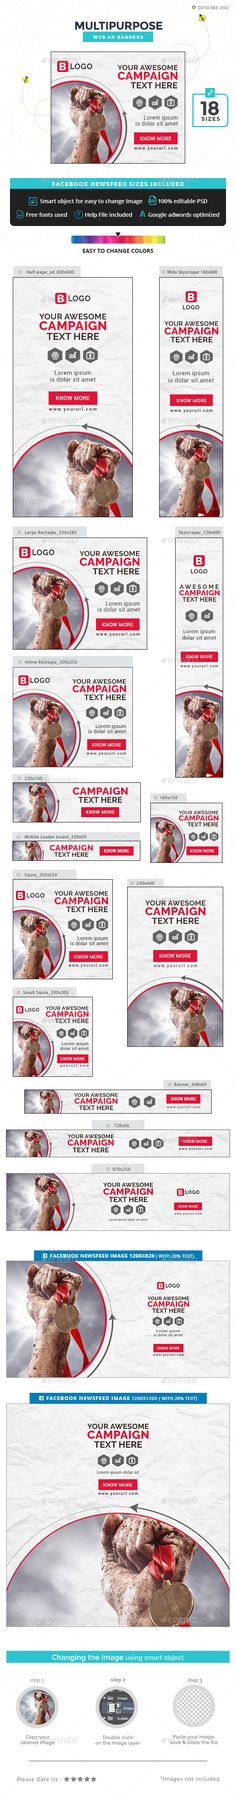 Multipurpose Banners — Photoshop PSD #business #web banner • Available here → https://graphicriver.net/item/multipurpose-banners/19902865?ref=pxcr